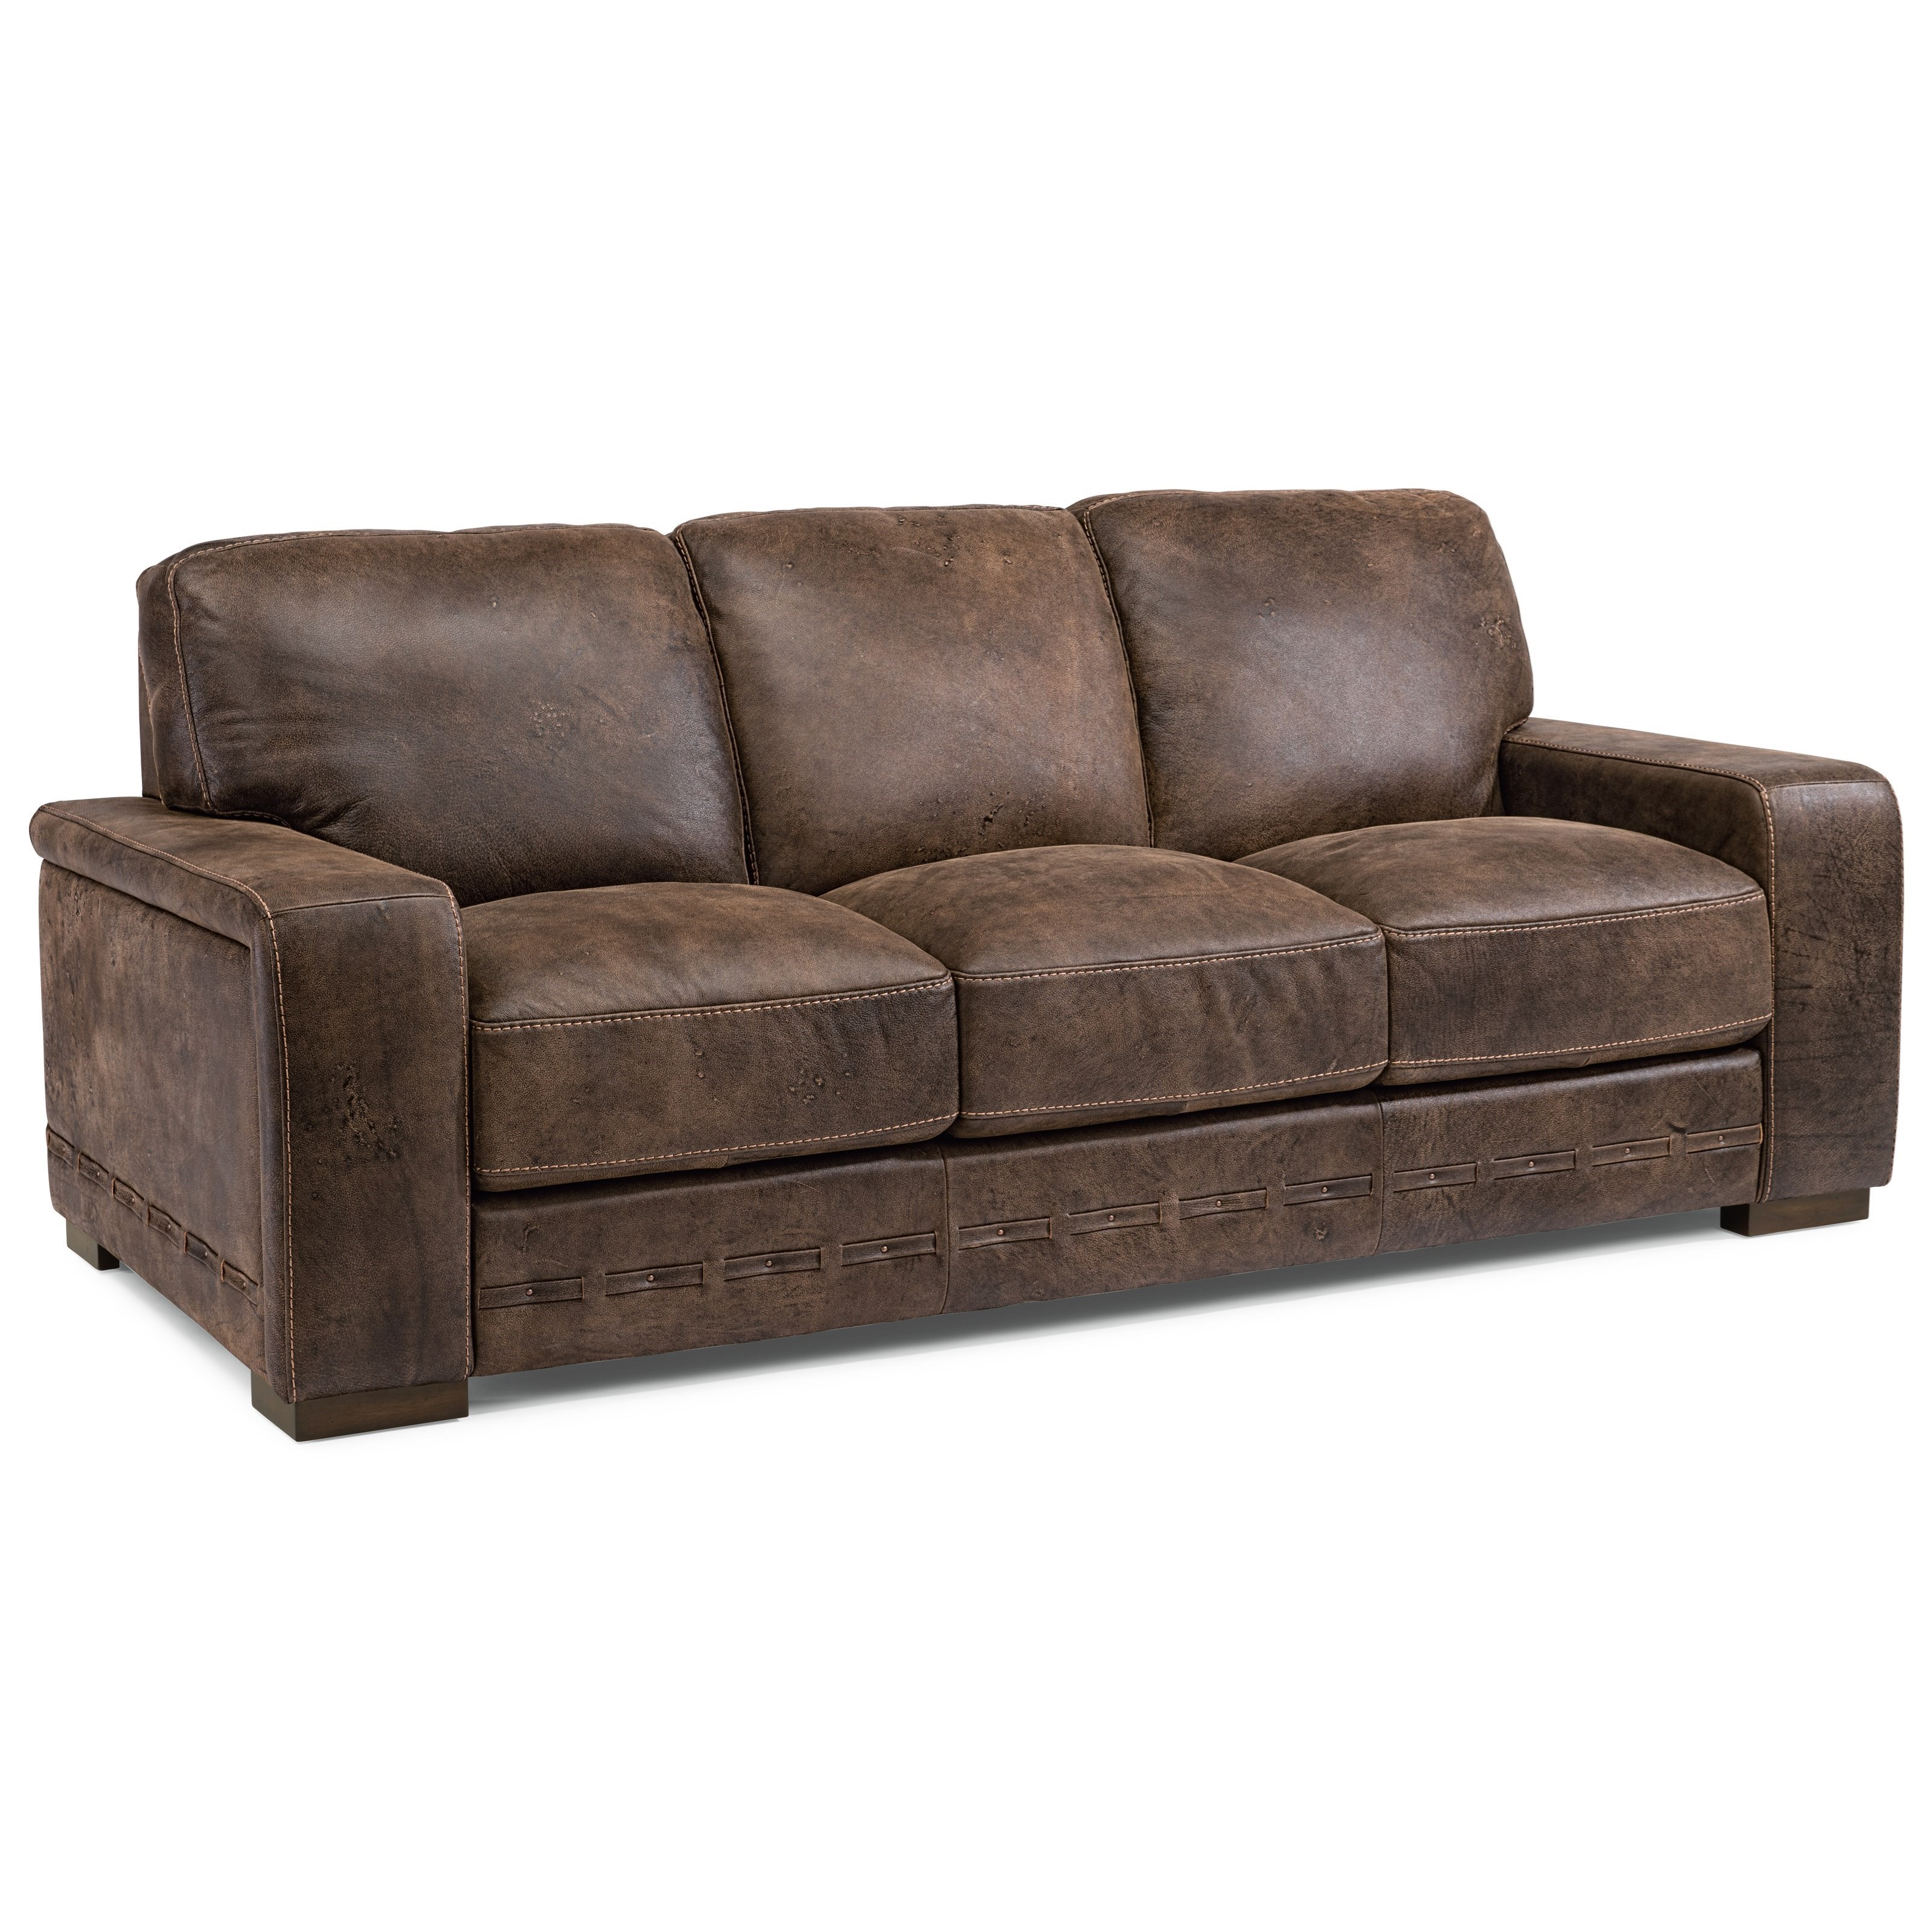 Awesome Flexsteel Buxton Contemporary Leather Sofa   Dunk U0026 Bright Furniture   Sofas Great Ideas